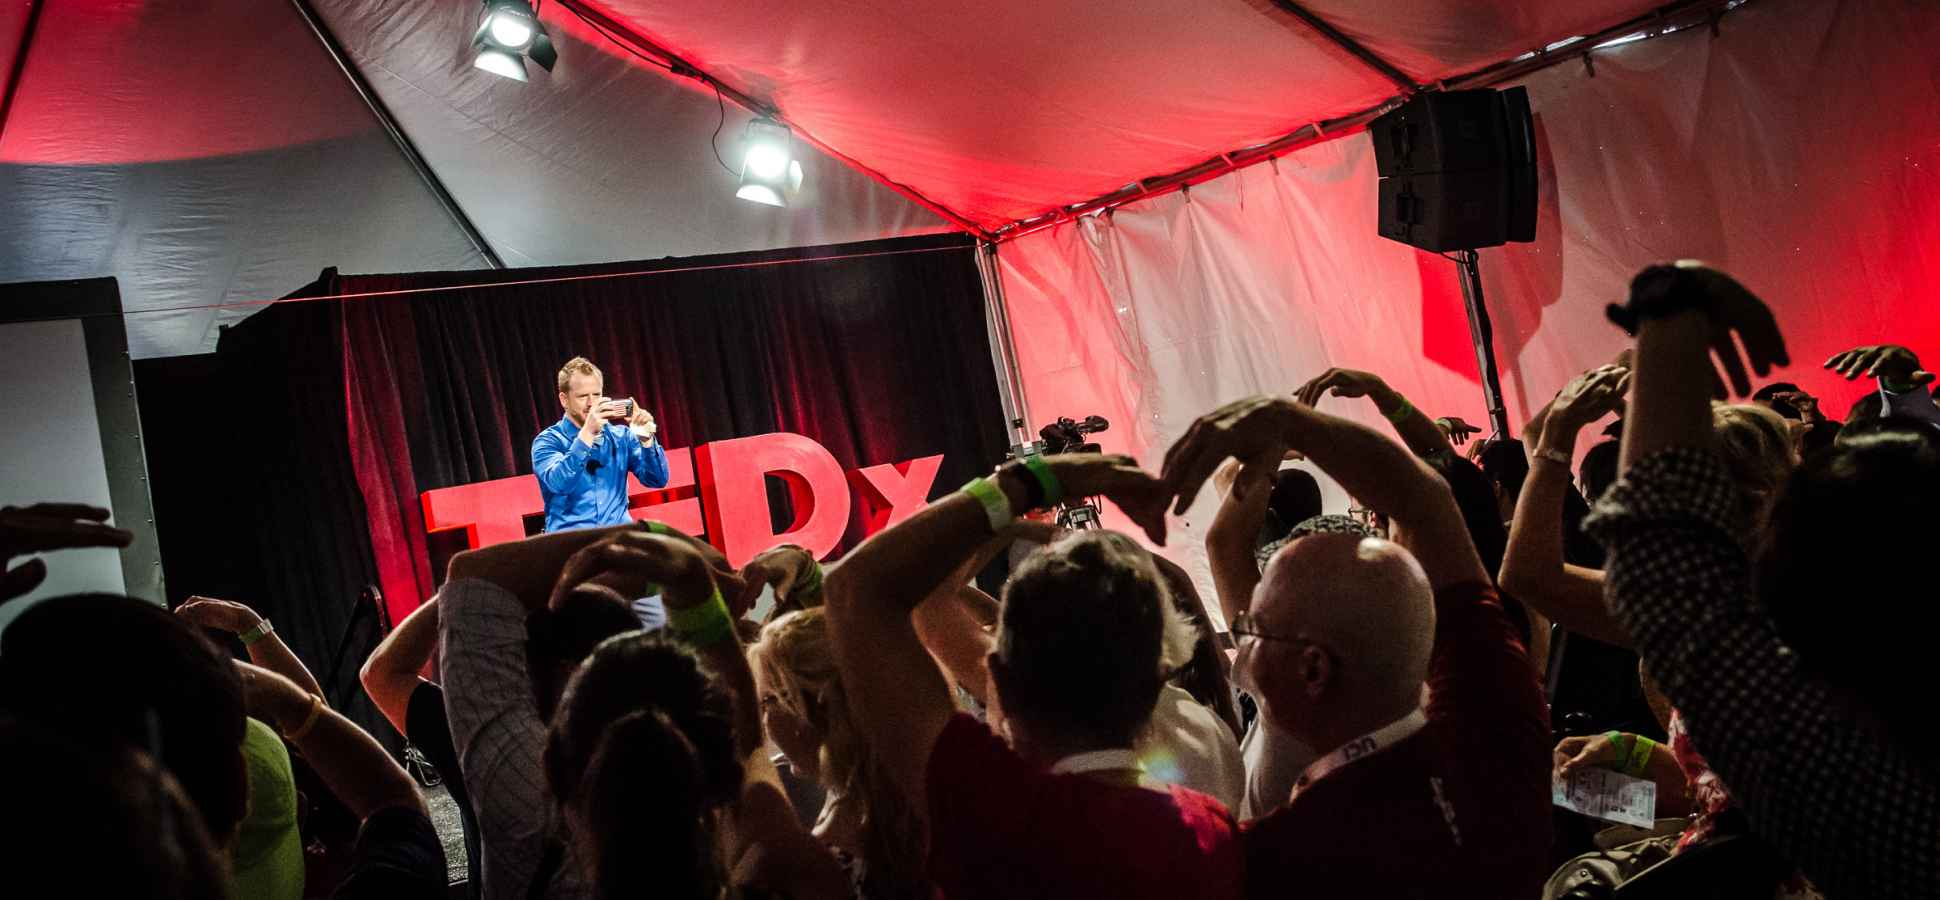 9 Insider Tips for Nailing the TEDx Application Process